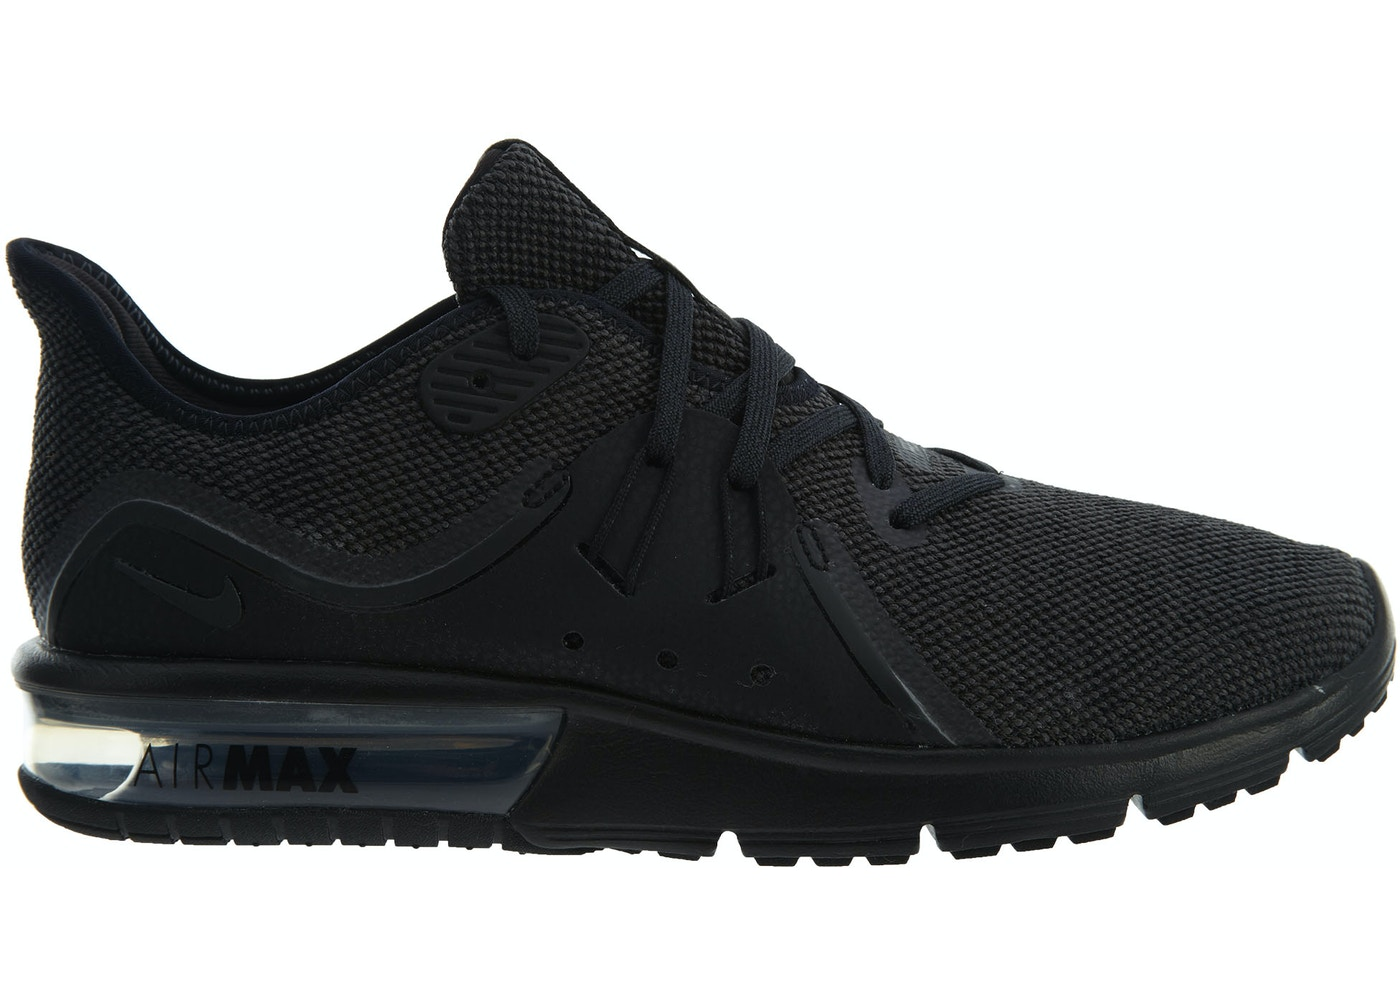 half off 053d7 80aab Air Max Sequent 3 Black Anthracite